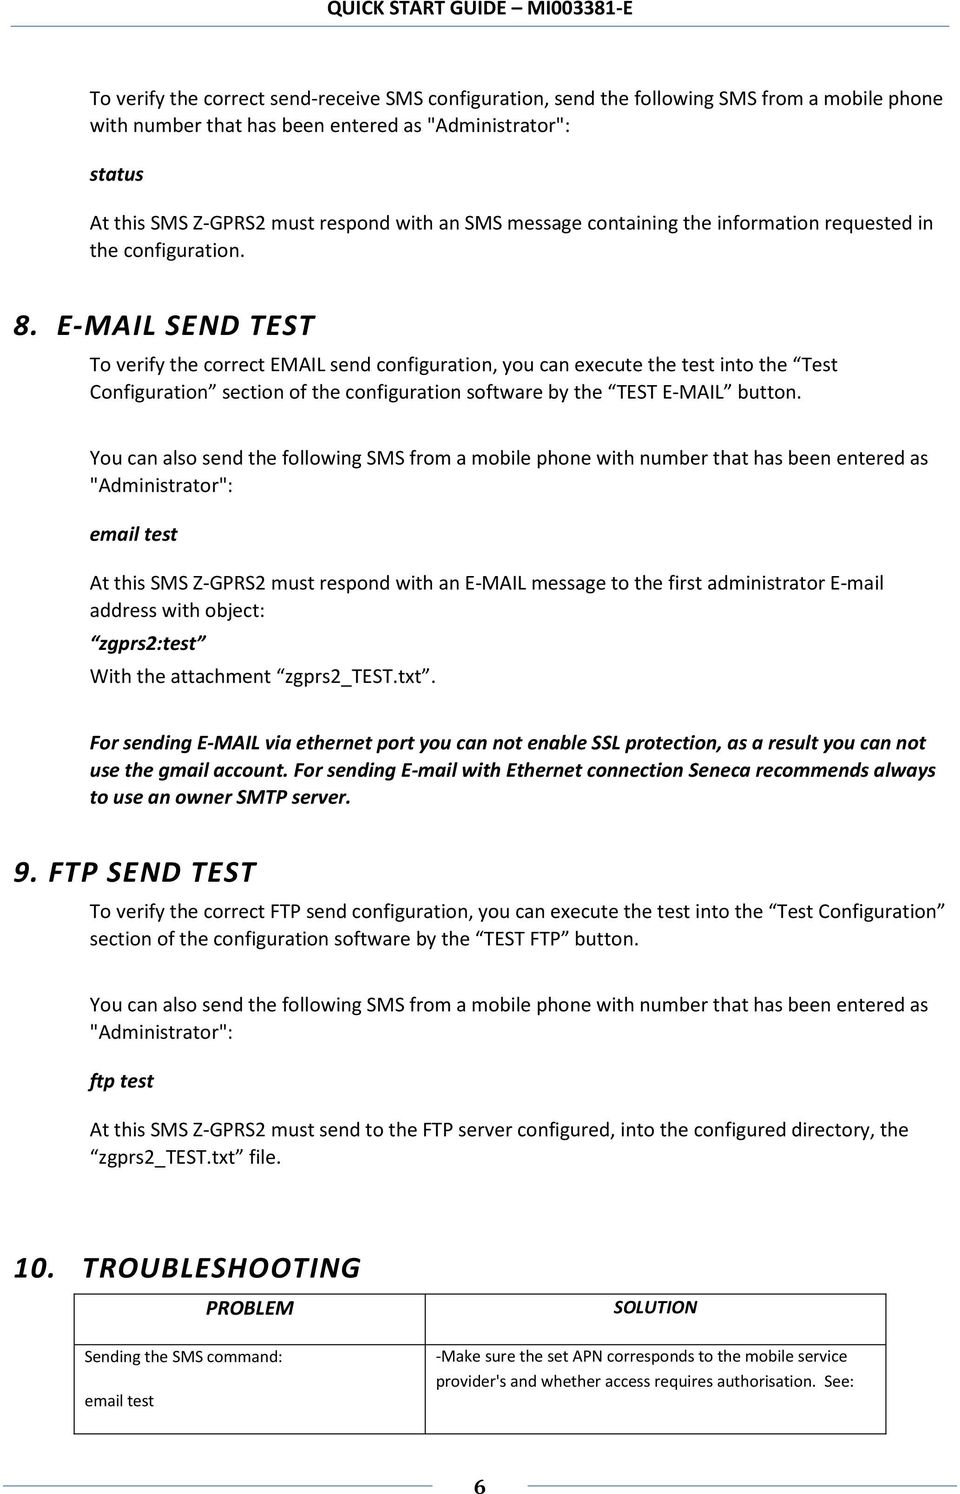 E-MAIL SEND TEST To verify the correct EMAIL send configuration, you can execute the test into the Test Configuration section of the configuration software by the TEST E-MAIL button.